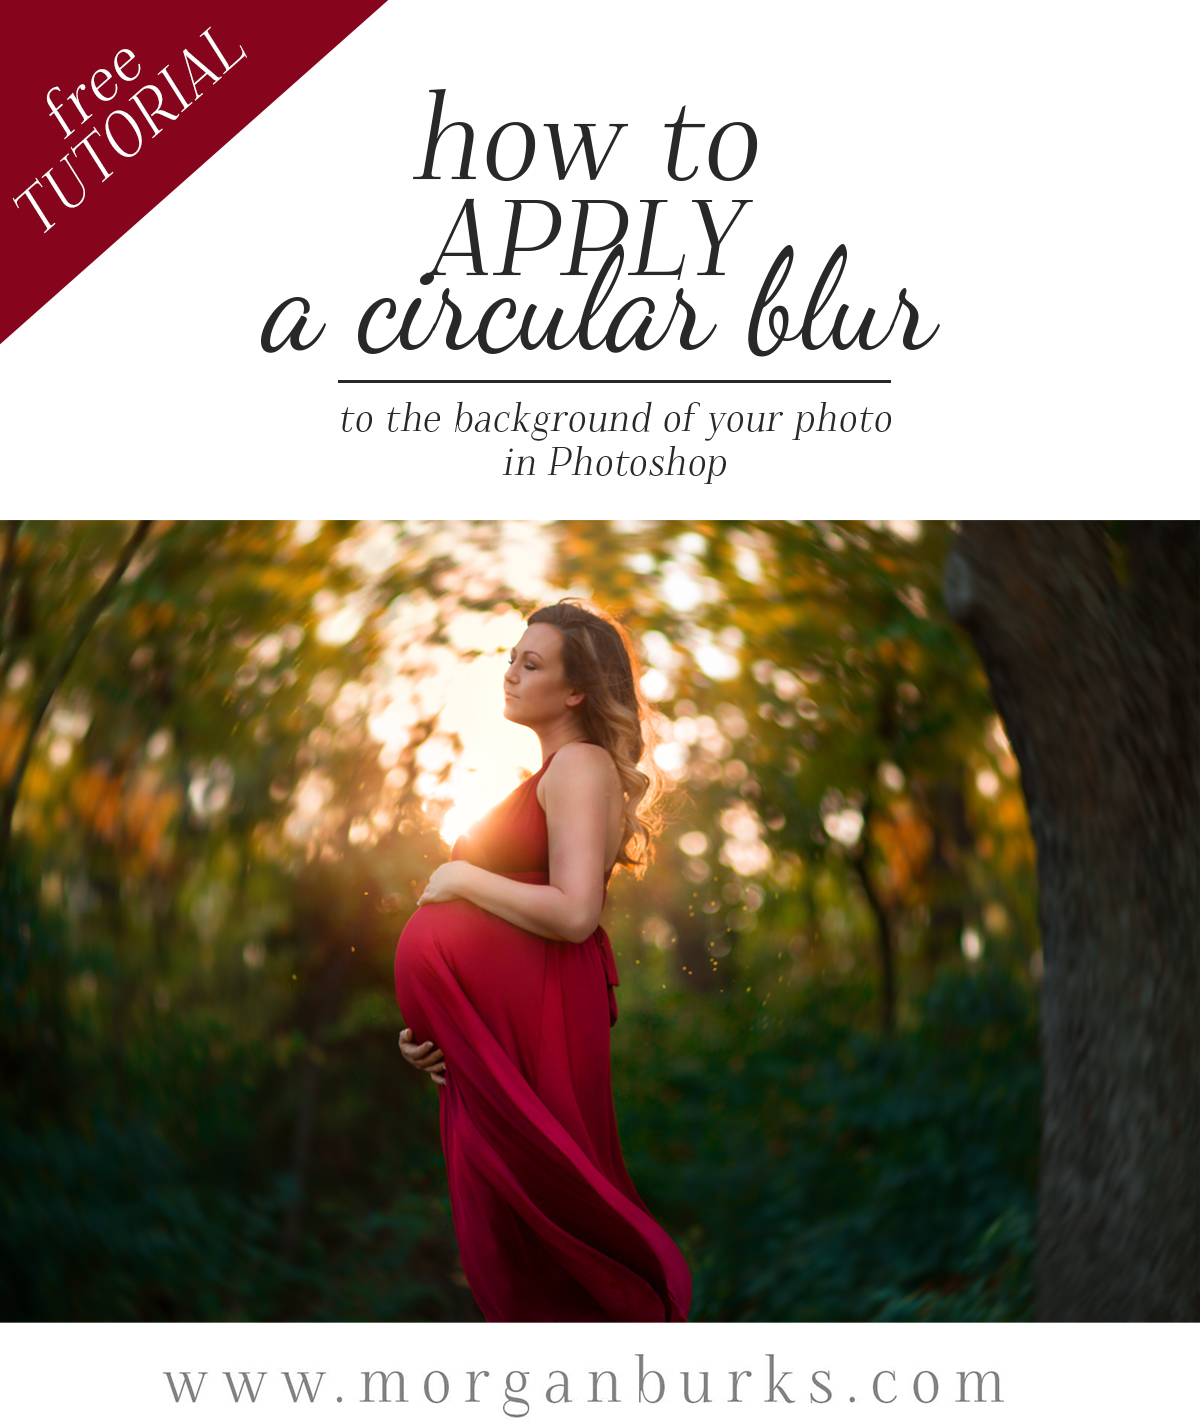 Free video tutorial - How to create a circular background blur effect in Photoshop.